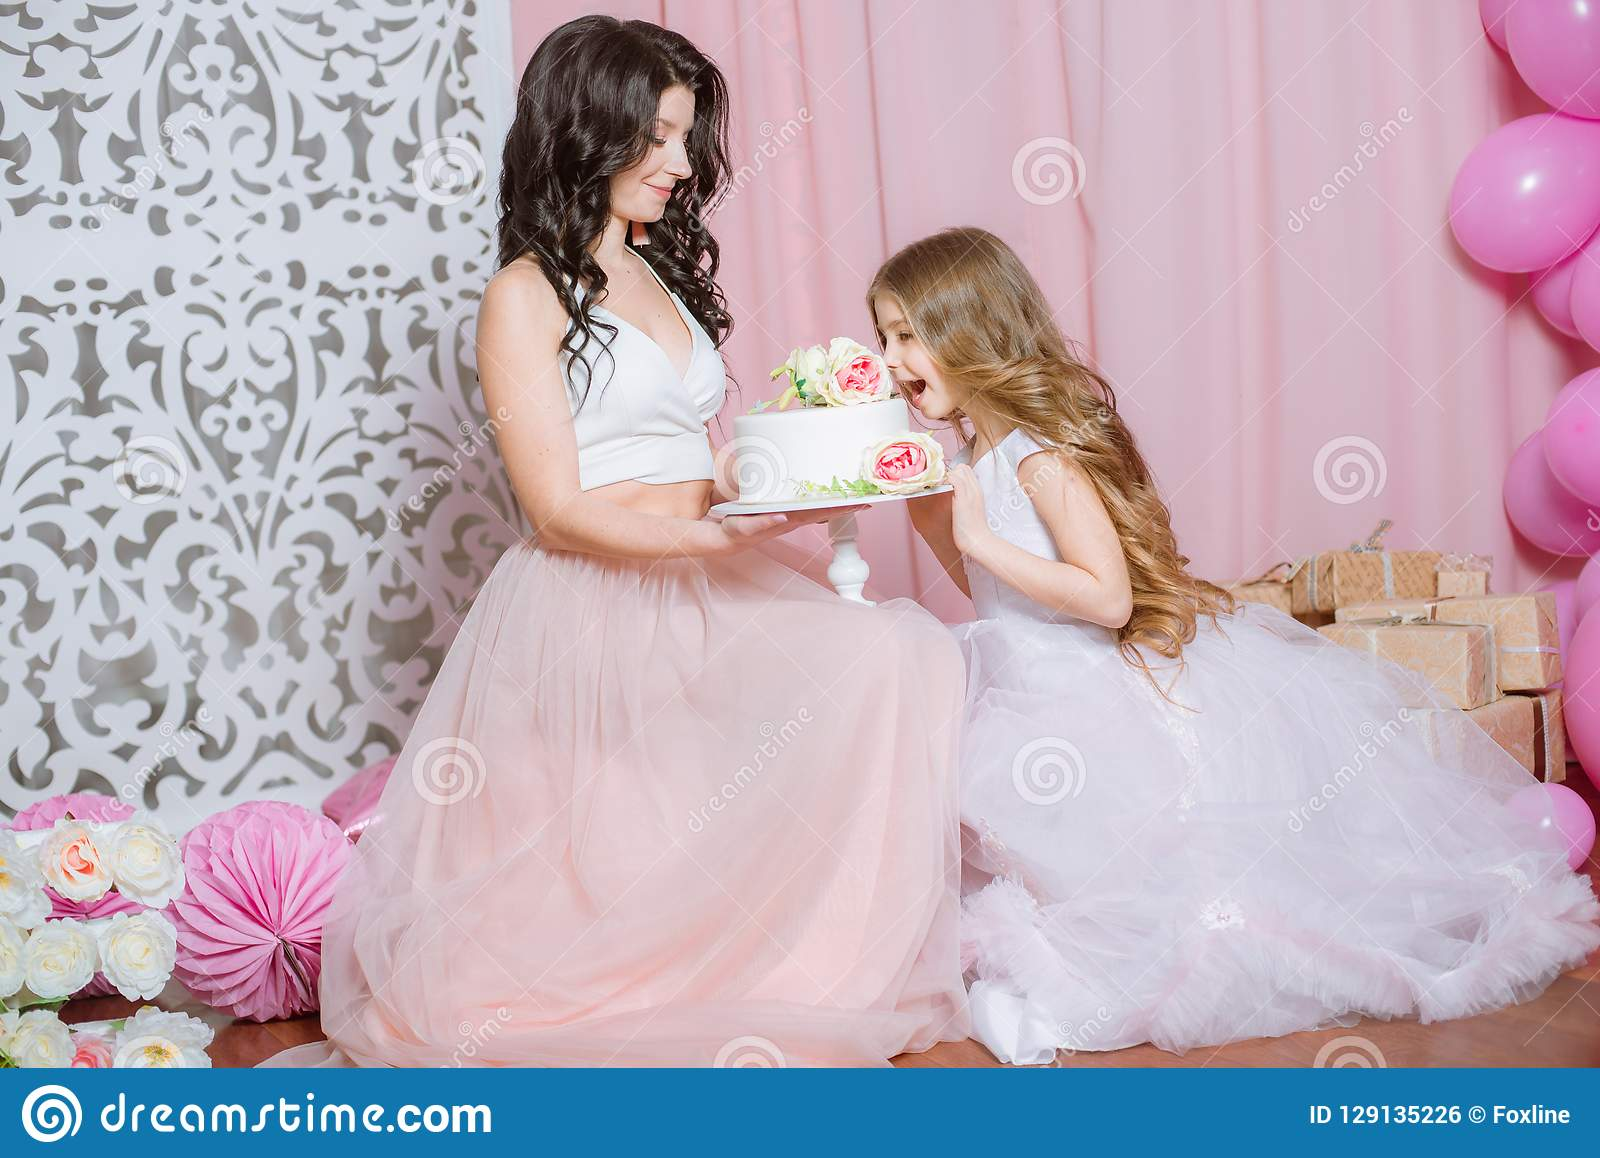 Mom And Daughter Celebrate Their Birthday With Pink Balloons